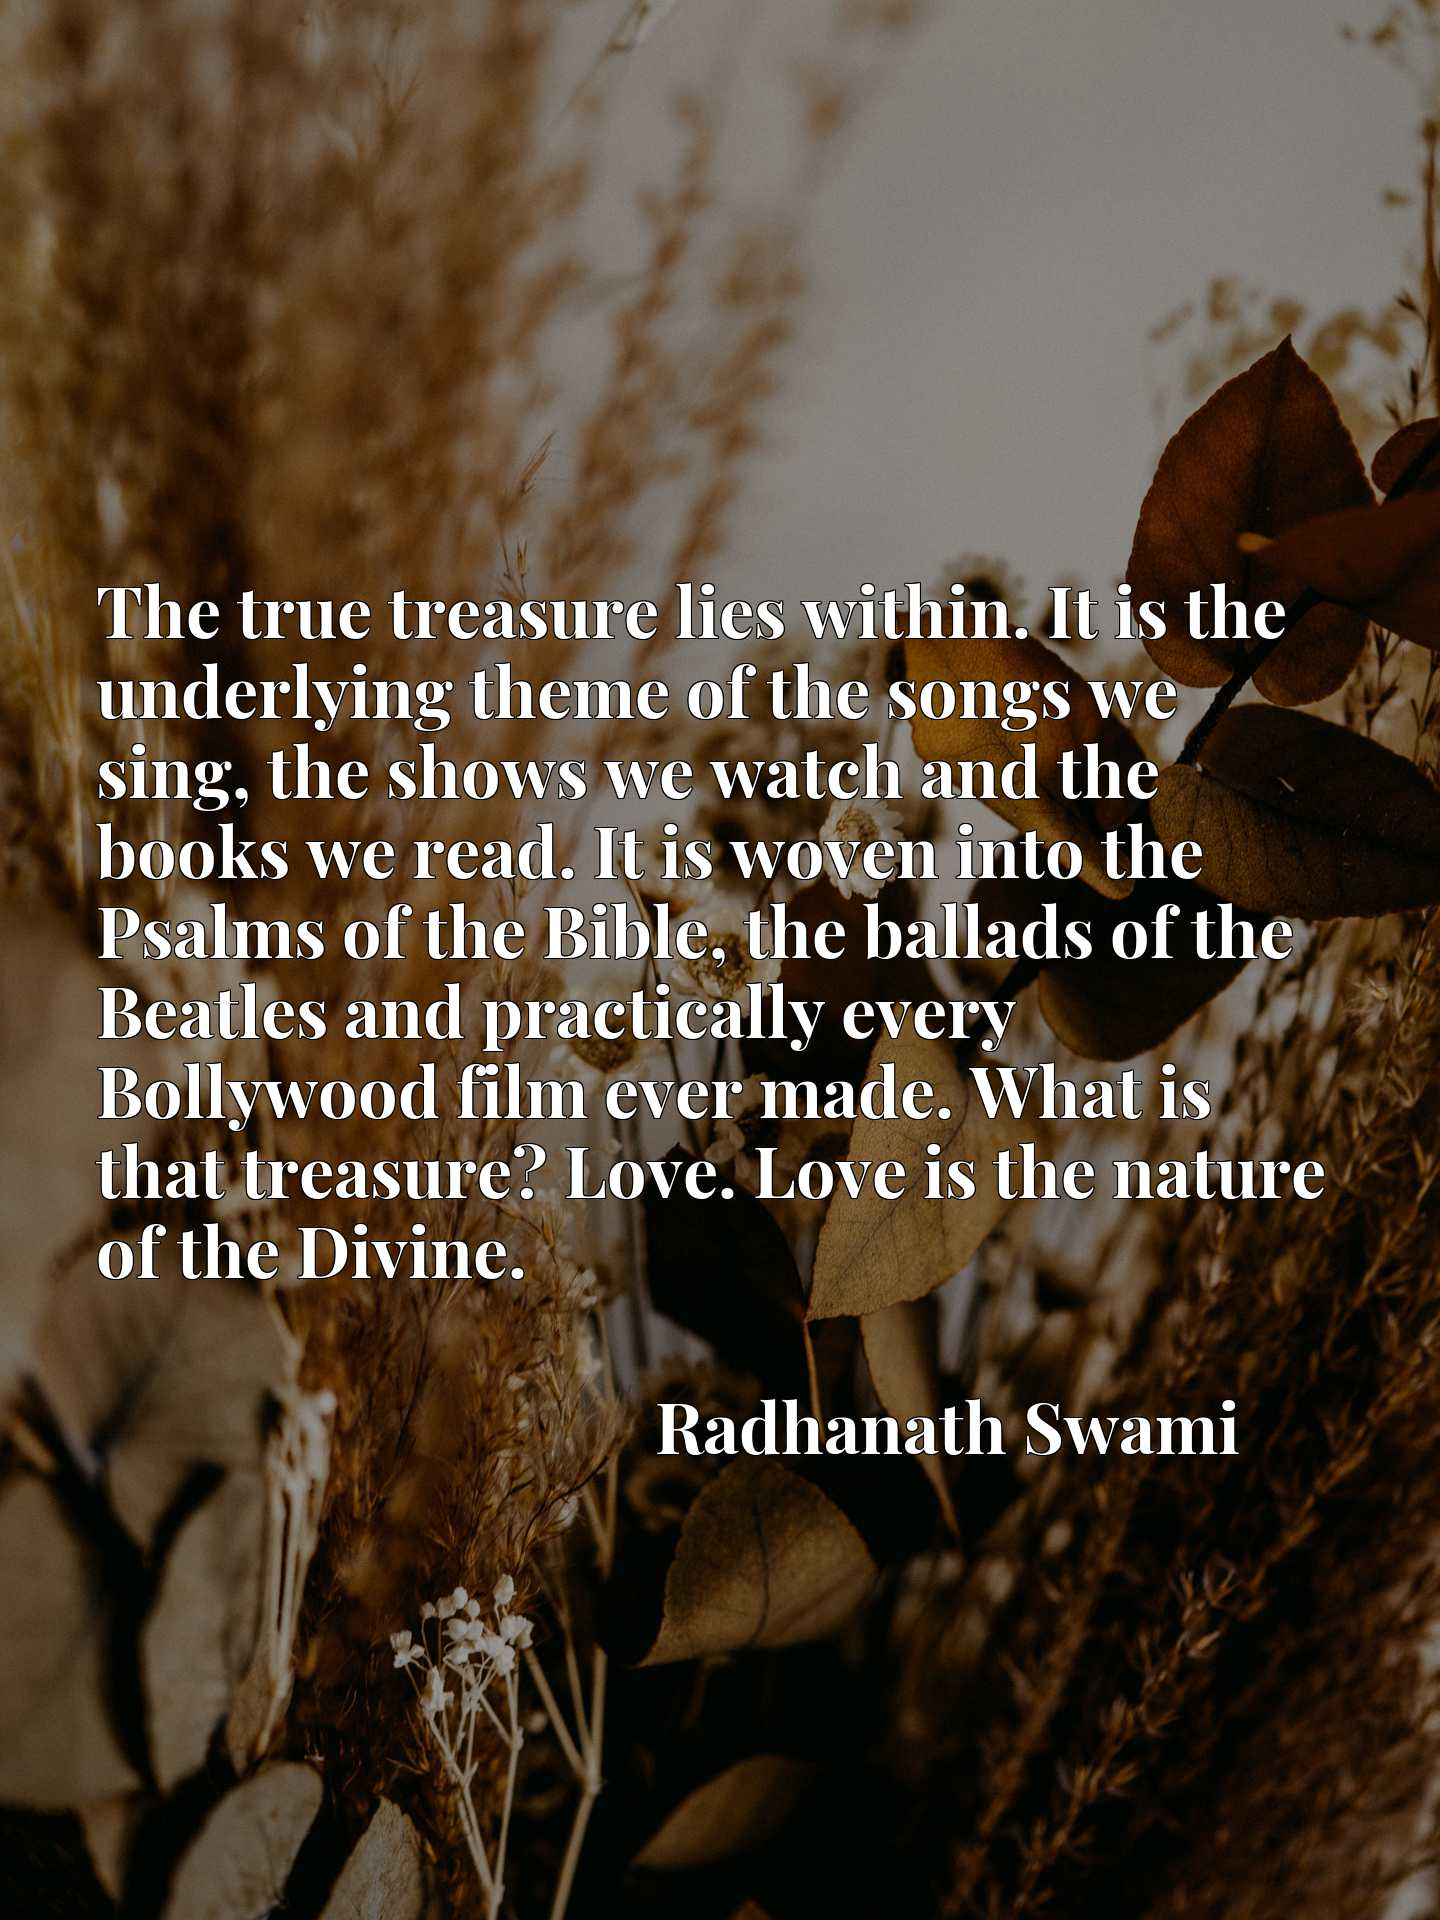 The true treasure lies within. It is the underlying theme of the songs we sing, the shows we watch and the books we read. It is woven into the Psalms of the Bible, the ballads of the Beatles and practically every Bollywood film ever made. What is that treasure? Love. Love is the nature of the Divine.